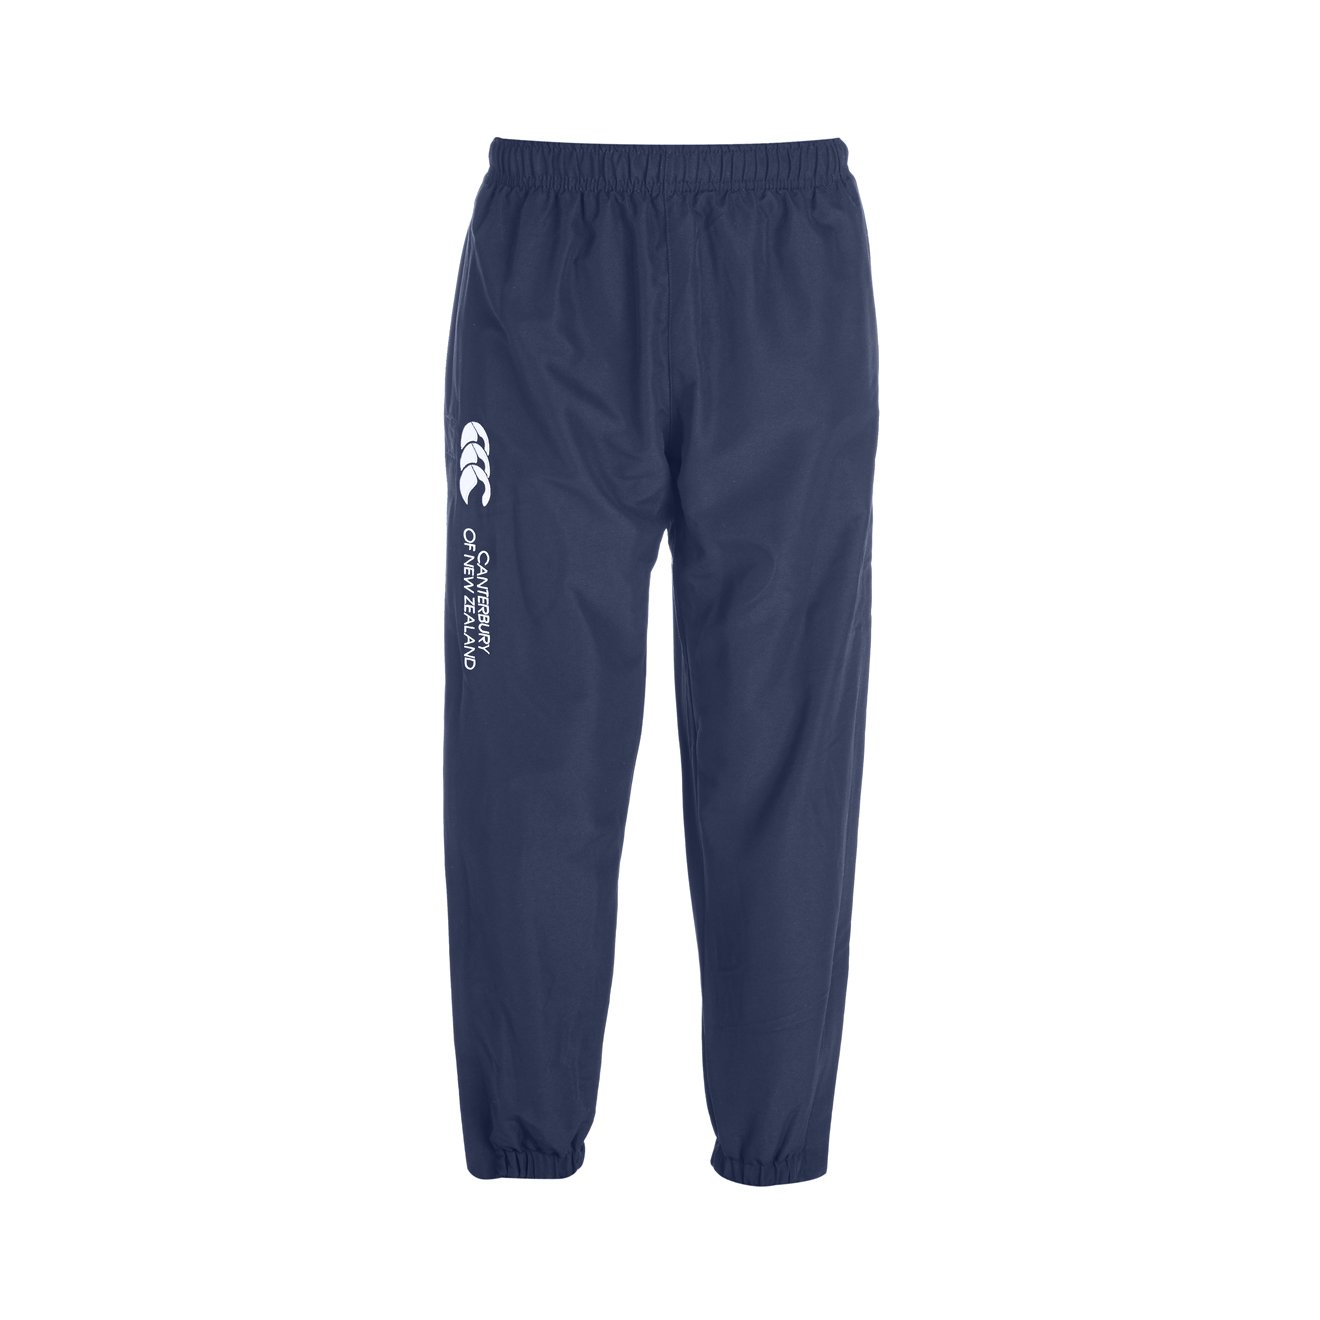 Canterbury Boys' Cuffed Stadium Pants